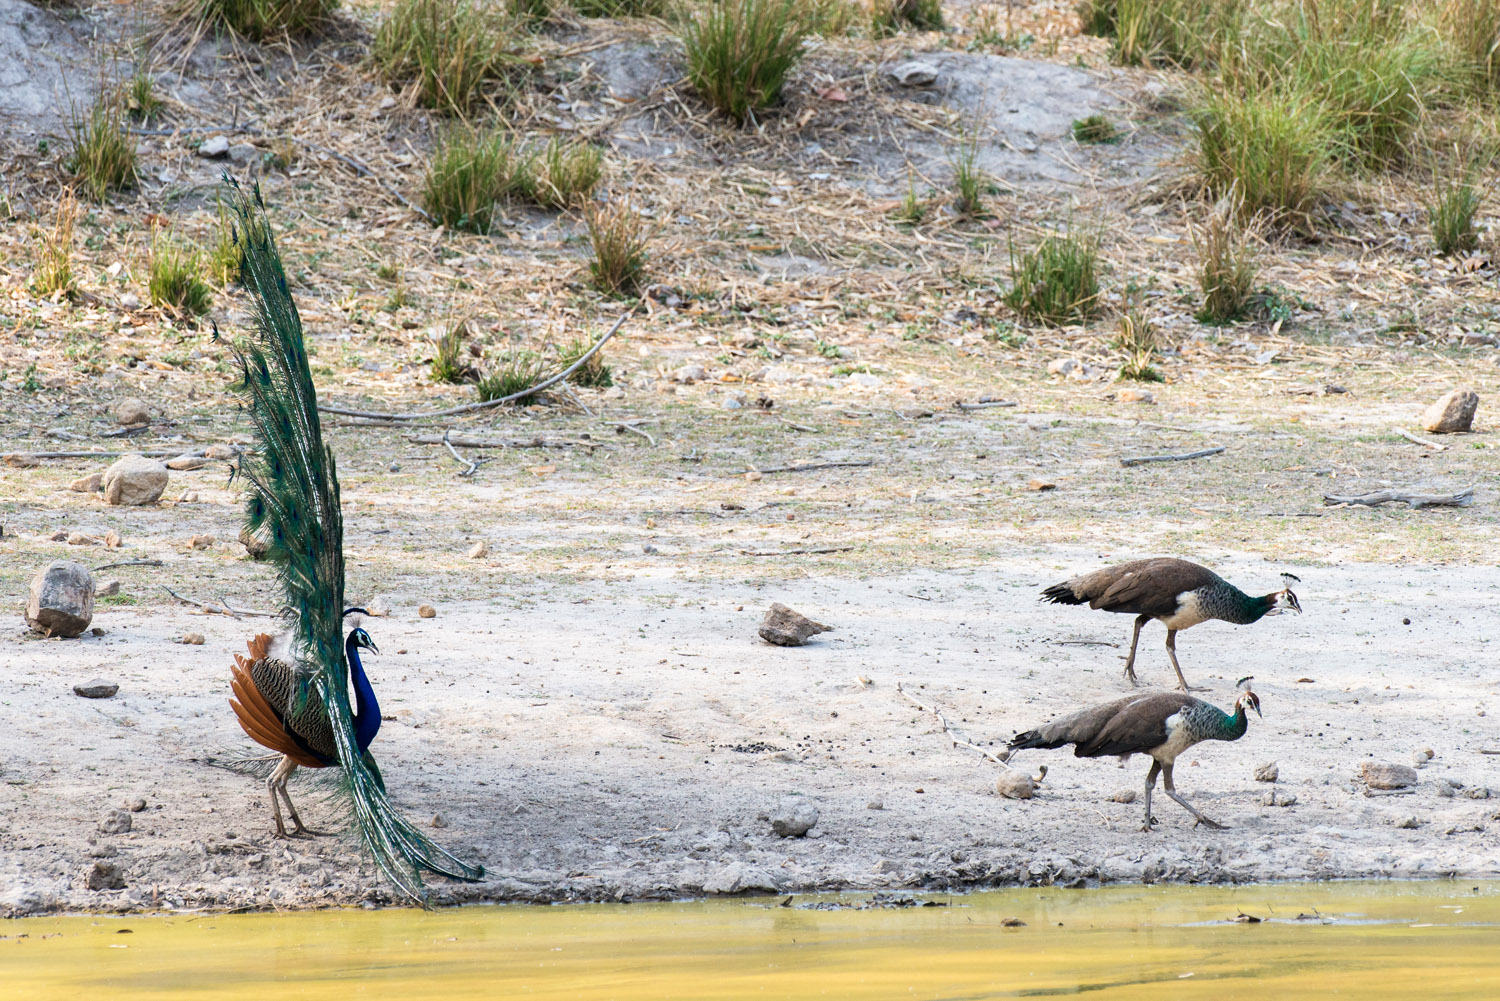 Indian peacock in courtship display to peahens at edge of pool, Bandhavgarh National Park, Madhya Pradesh, India